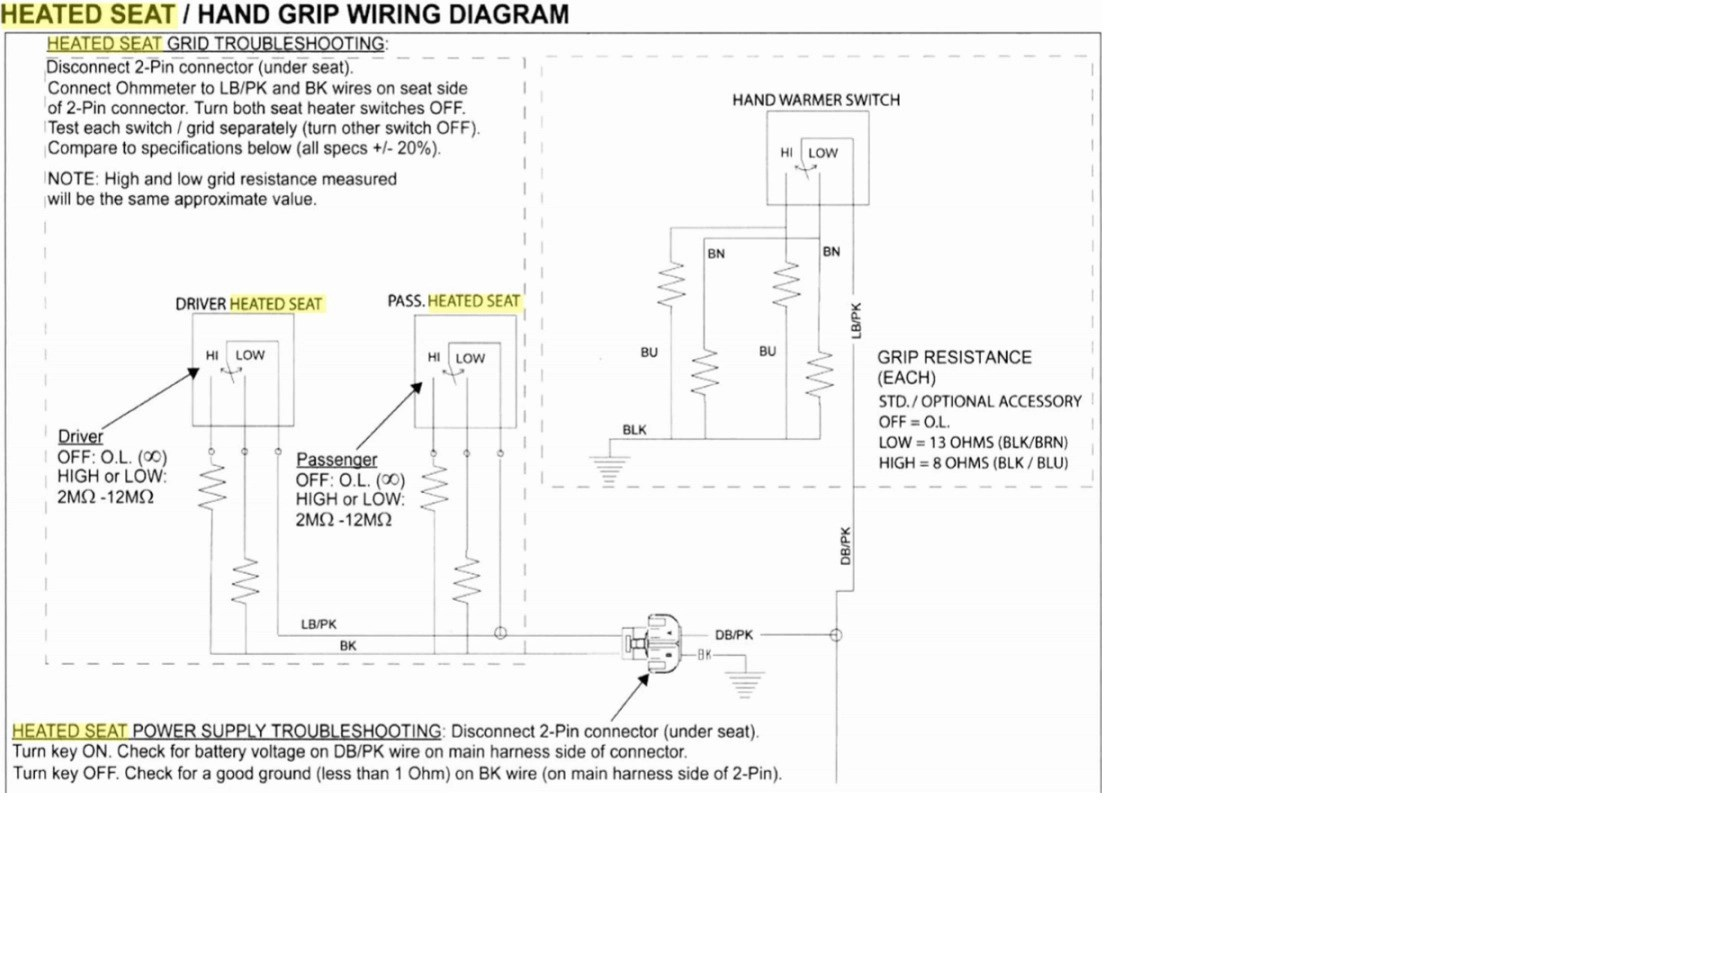 hight resolution of 2013 victory cross country wiring diagram wiring library rh 17 evitta de 2014 sportster wiring diagrams indian motorcycle wiring diagrams